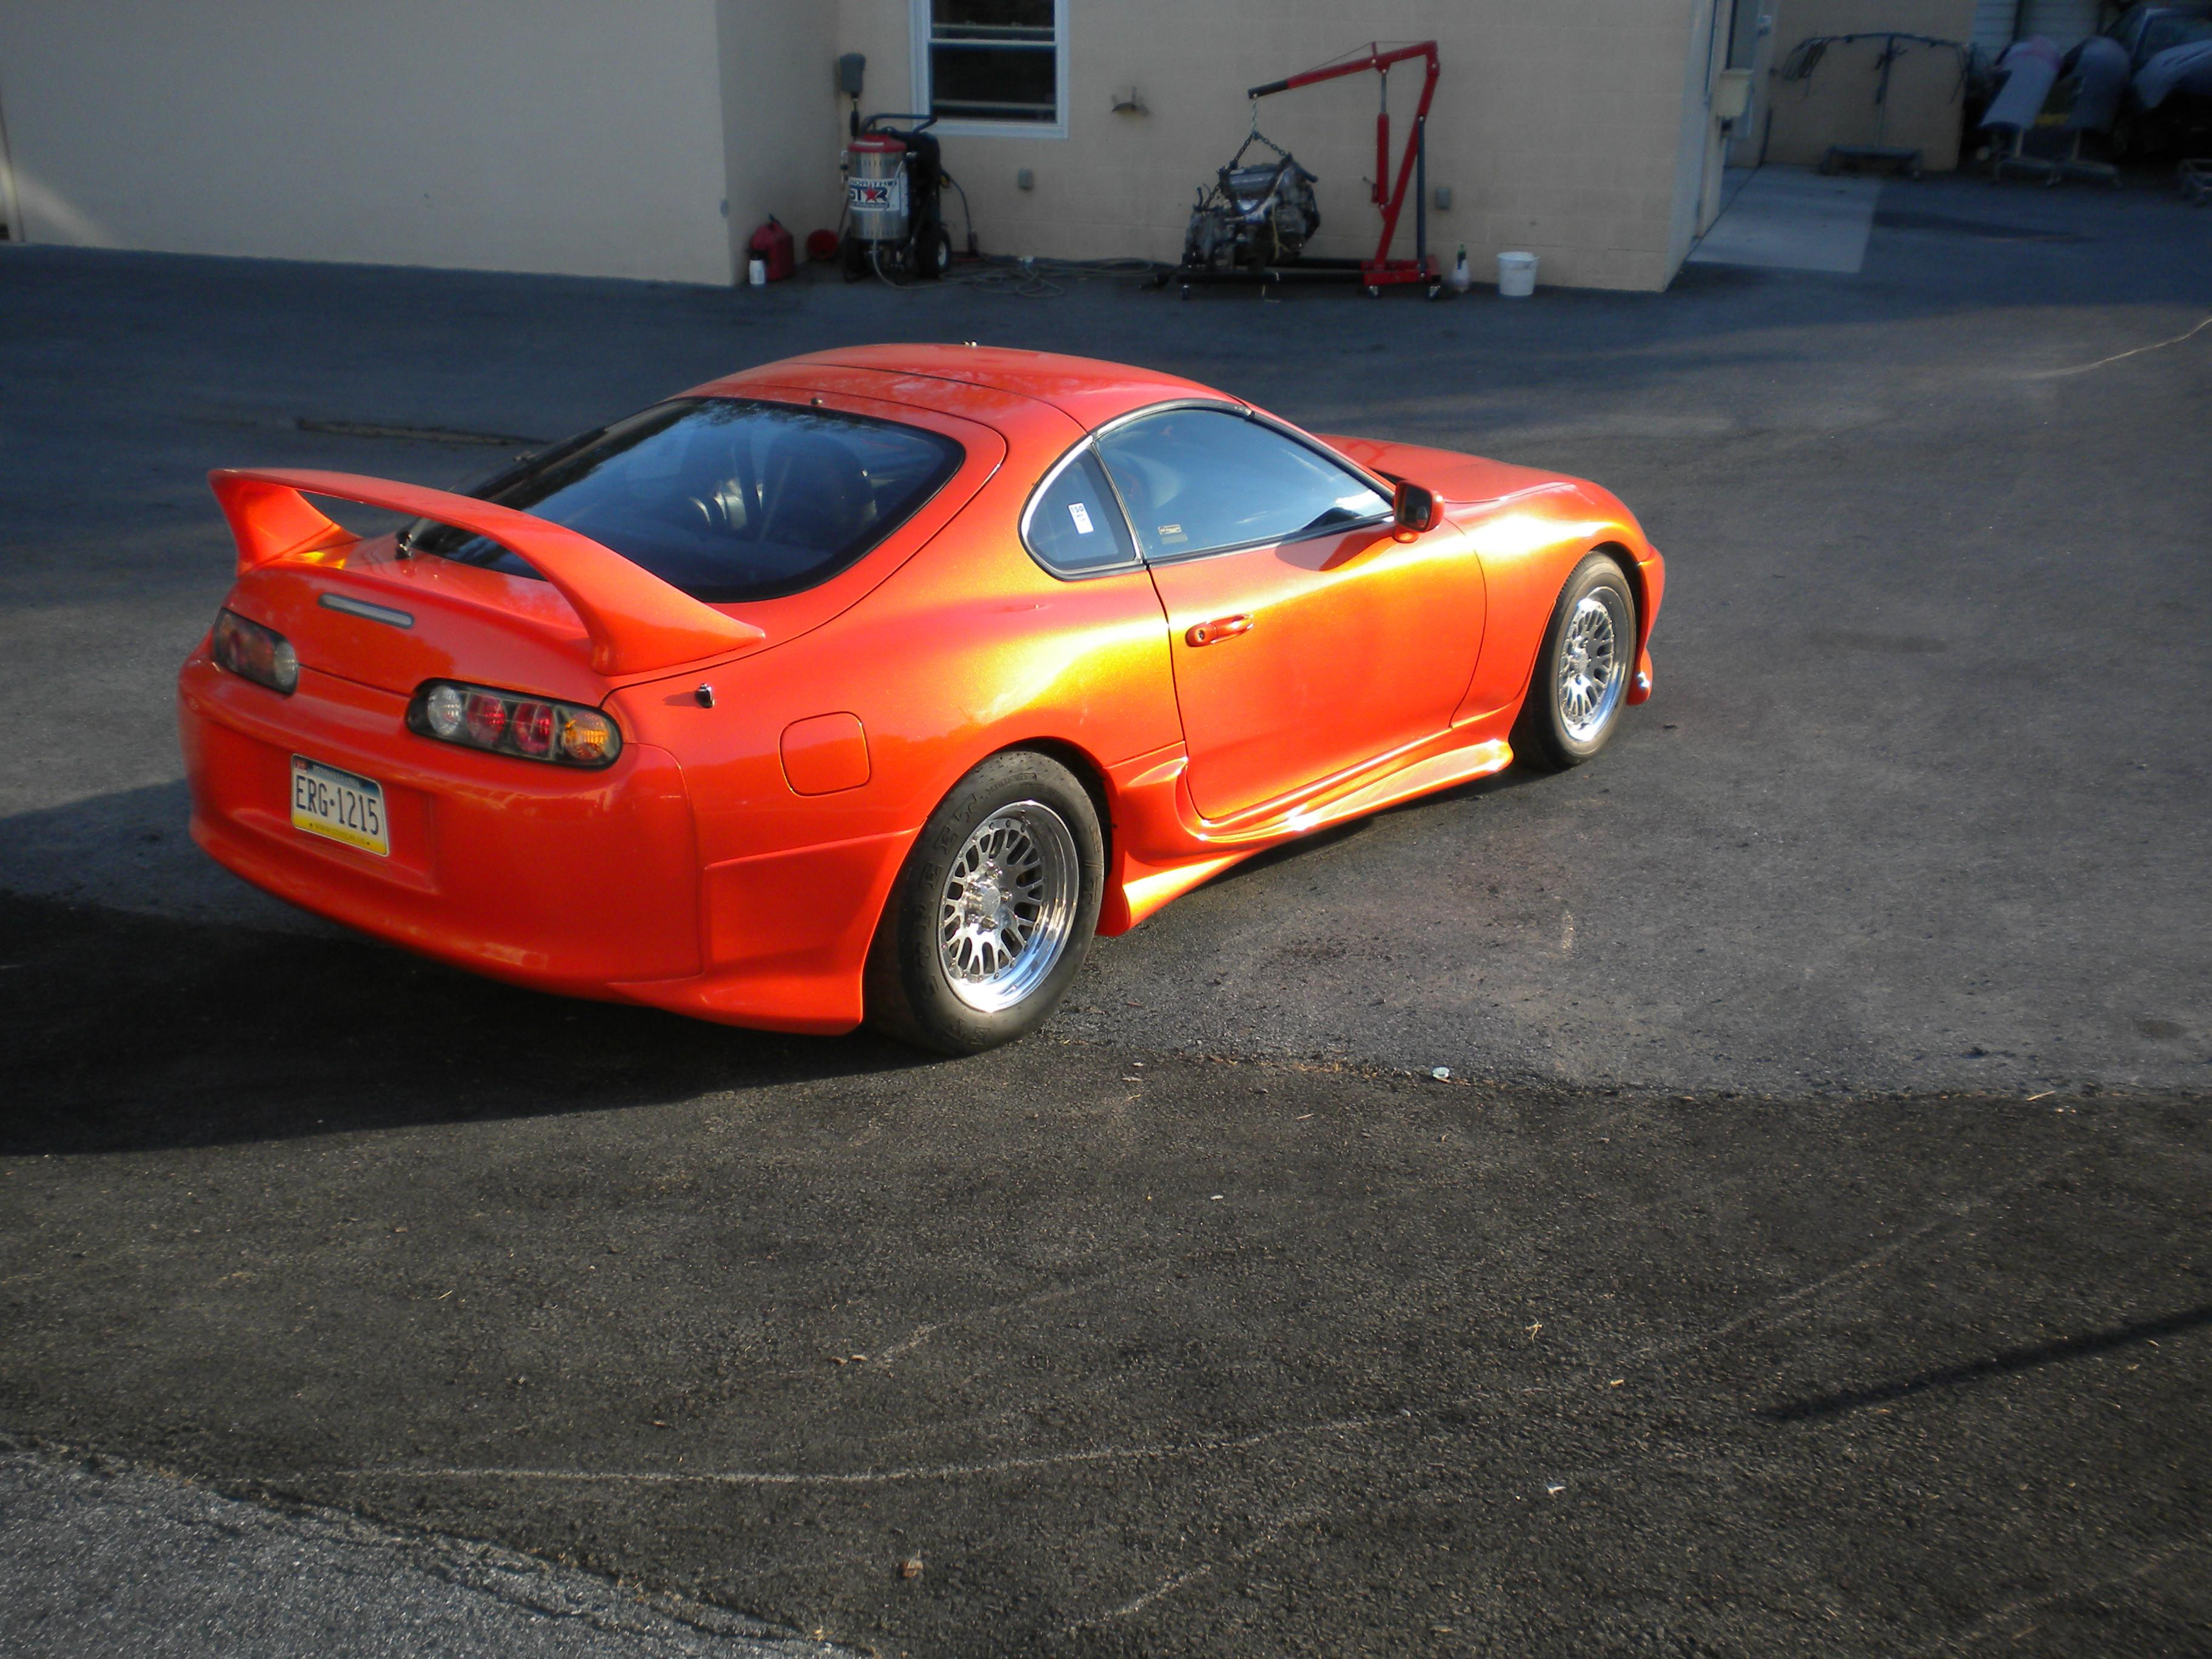 post for aftermarket sale toyota furious brisbane supra cipyj auto parts protection portfolio